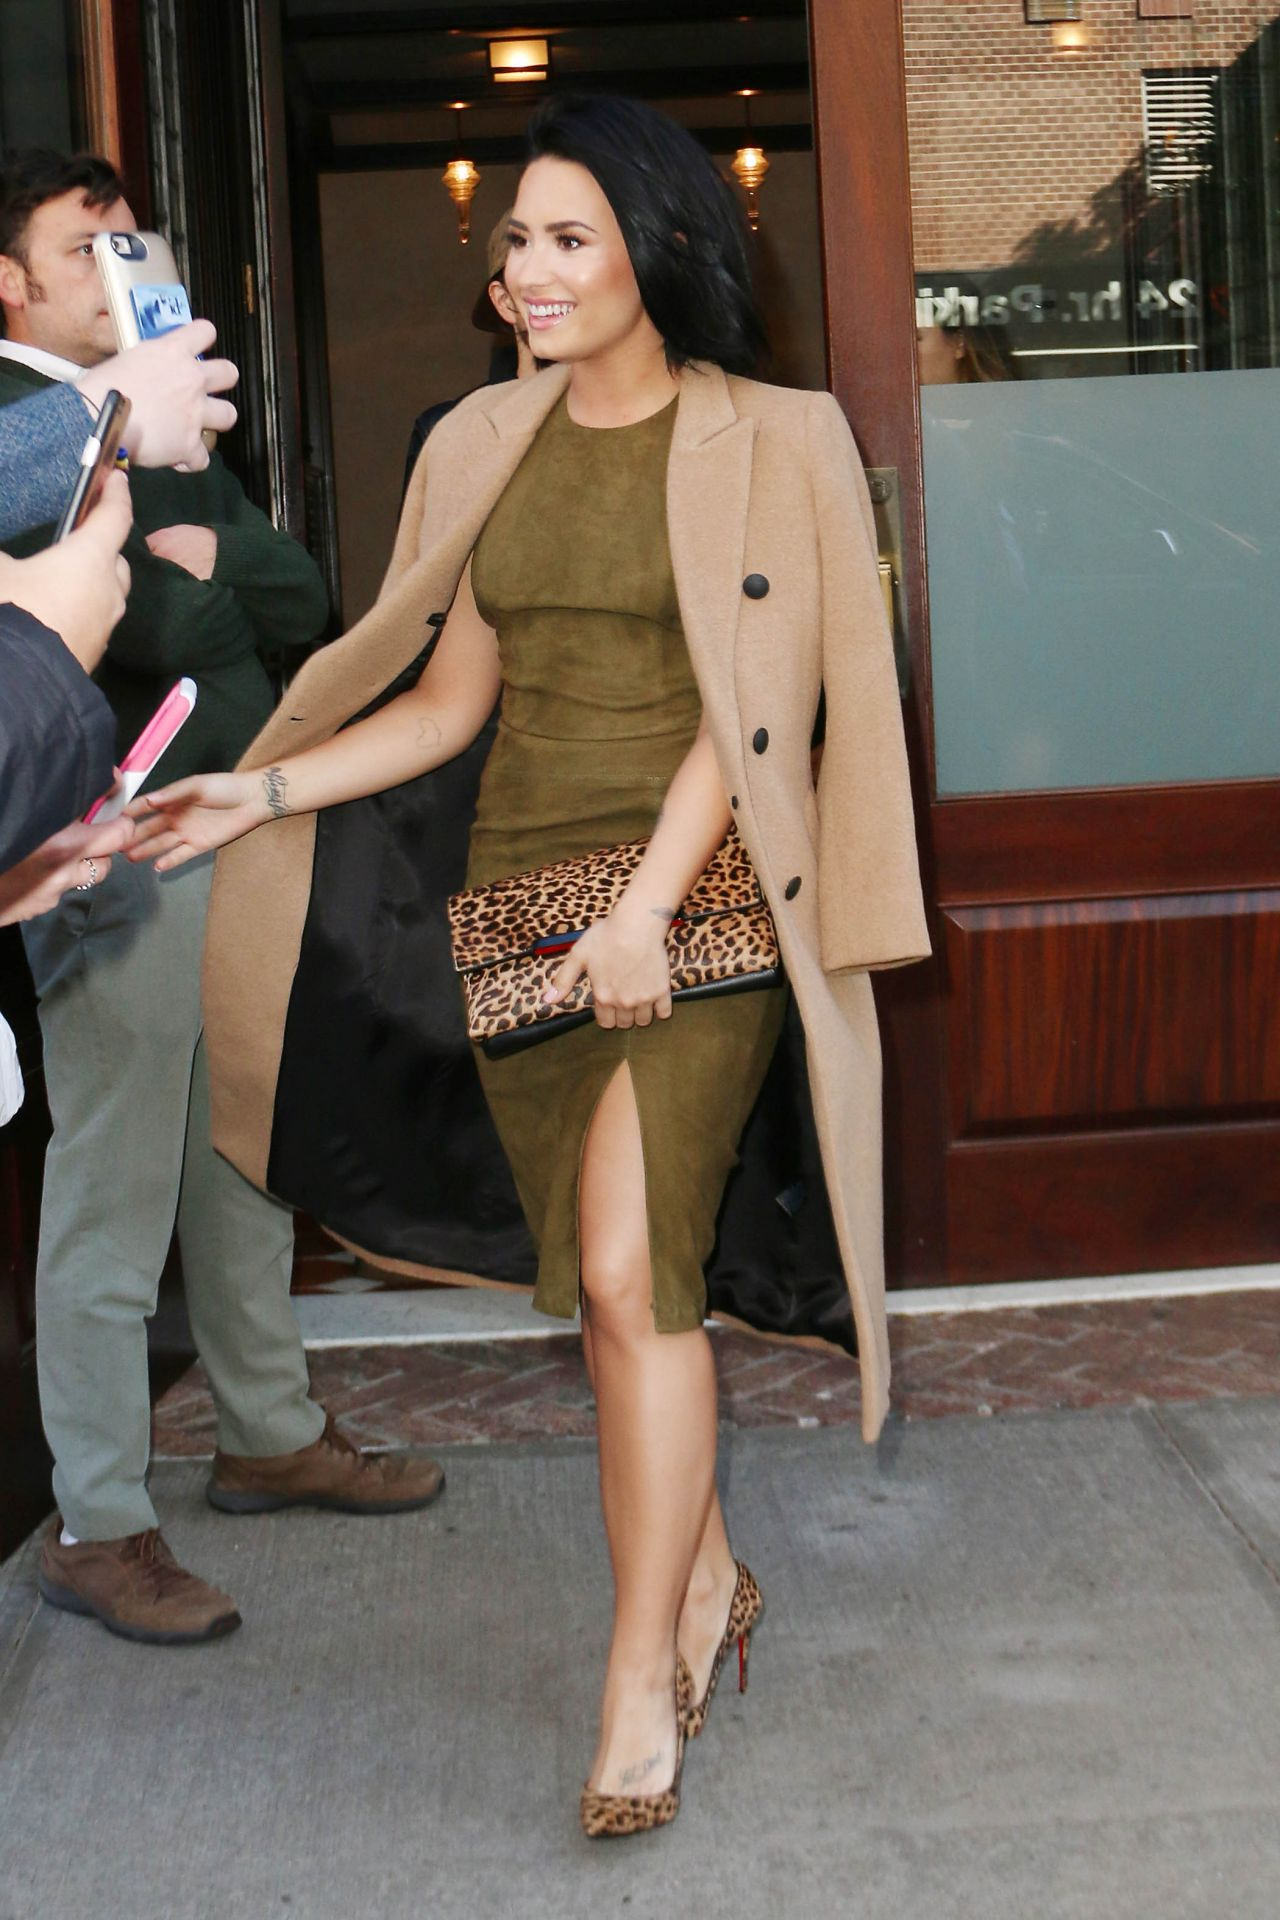 demi-lovato-leaving-the-greenwhich-hotel-in-new-york-city-october-2015_8